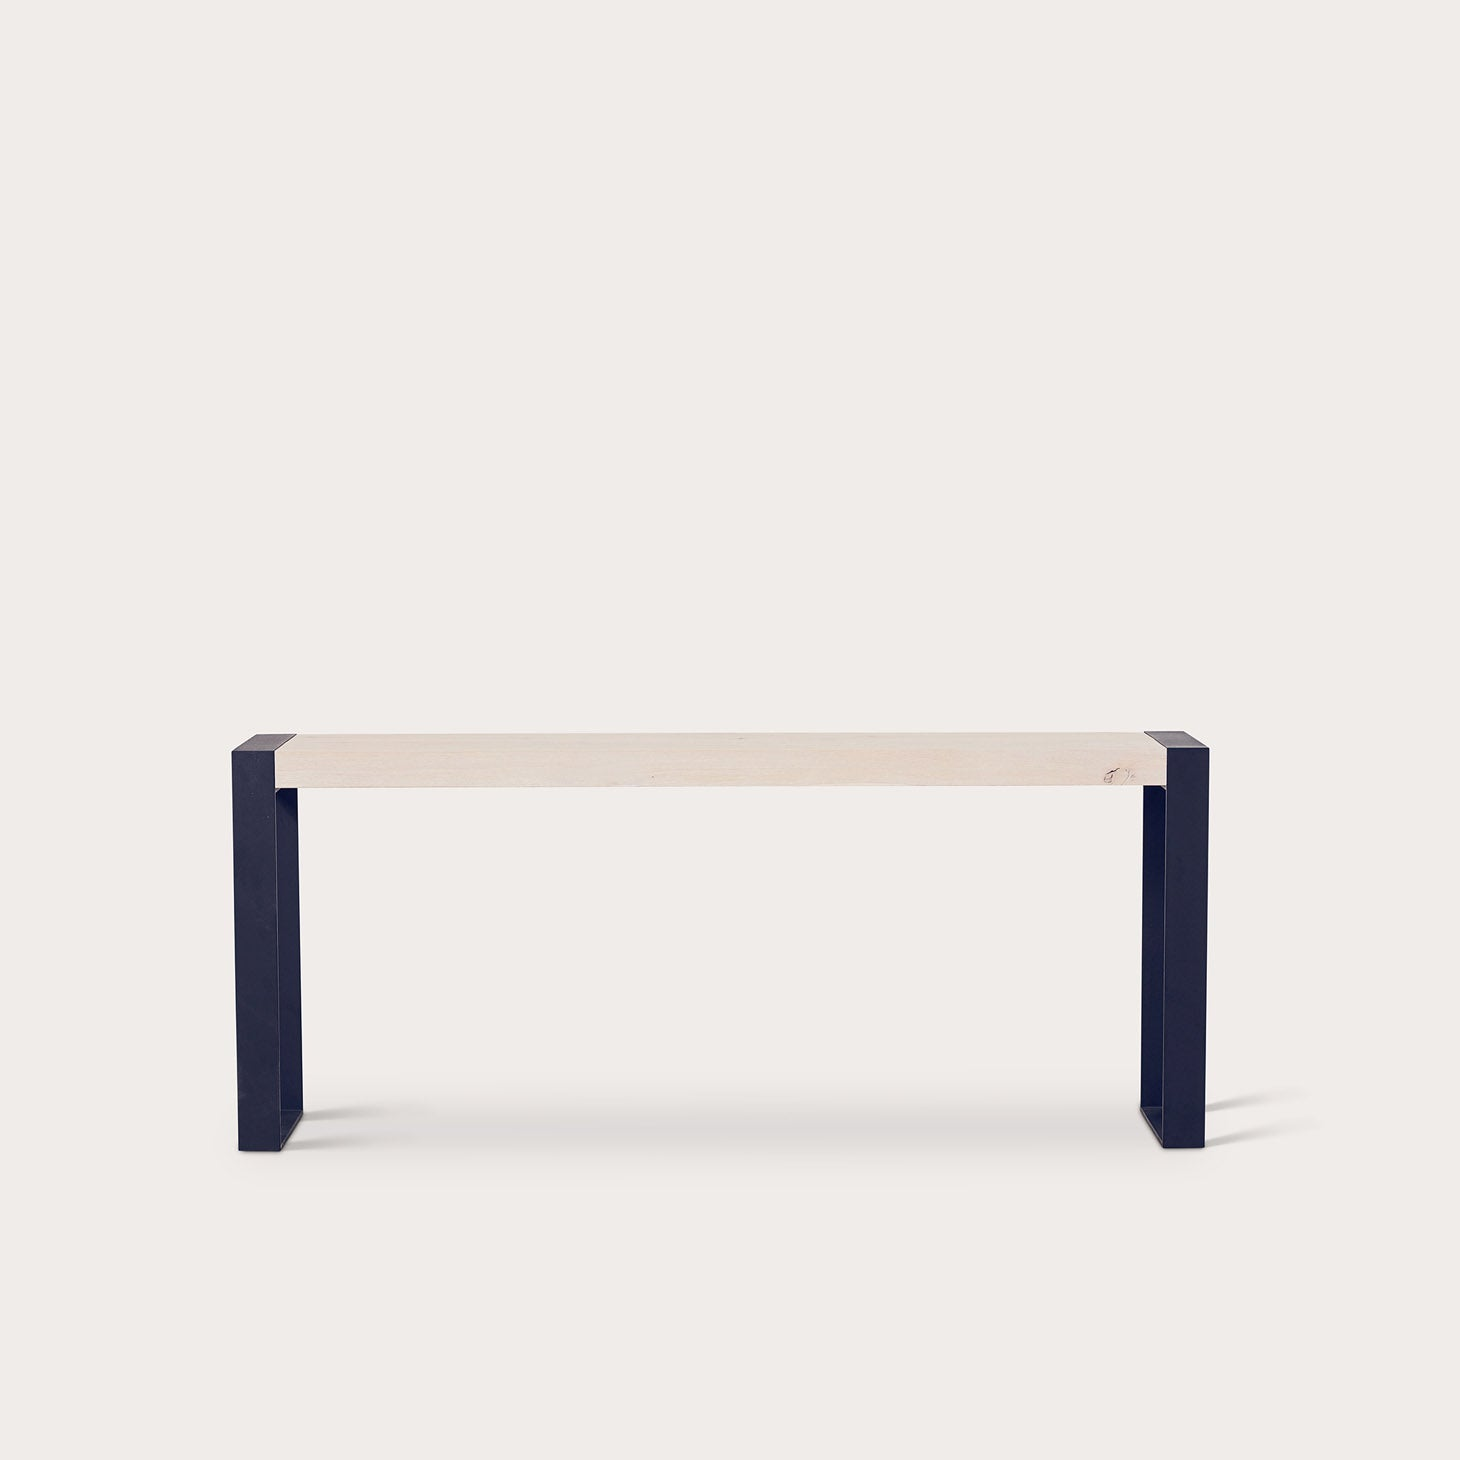 Beam Tables Marlieke Van Rossum Designer Furniture Sku: 416-230-10154